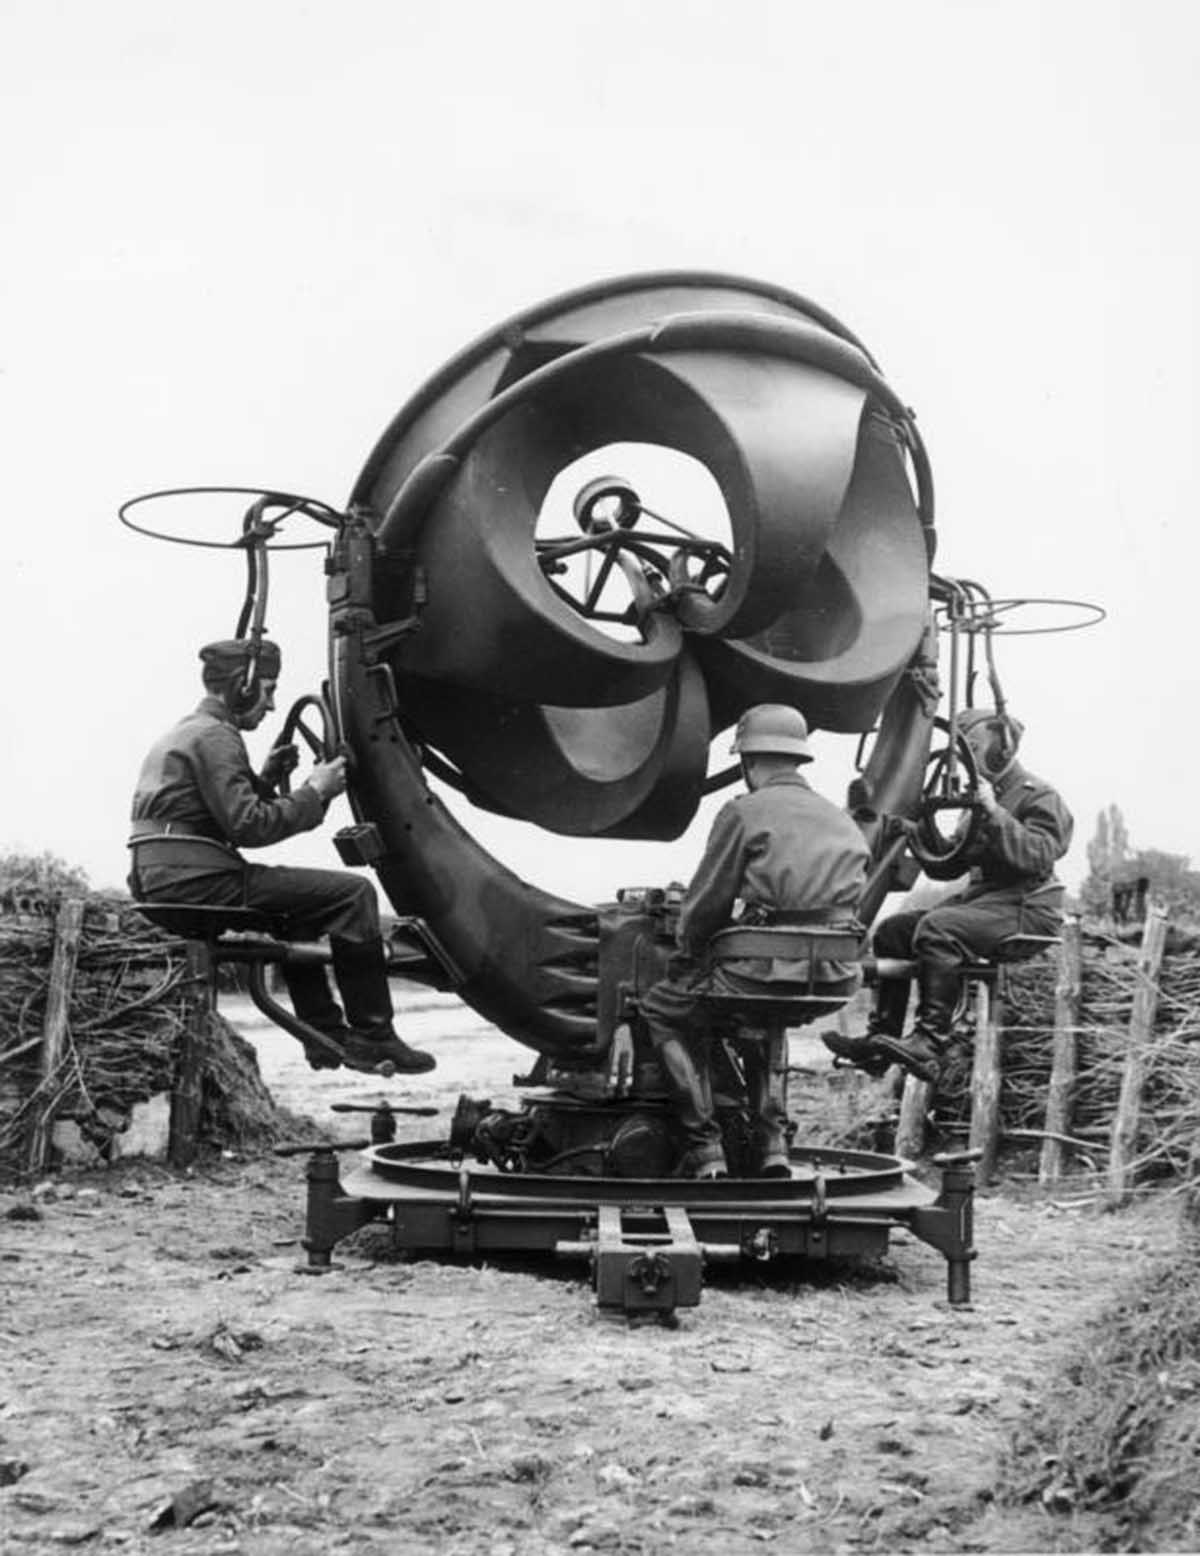 Sound location equipment in Germany, 1939. It consists of four acoustic horns, a horizontal pair and a vertical pair, connected by rubber tubes to stethoscope type earphones worn by the two technicians left and right. The stereo earphones enabled one technician to determine the direction and the other the elevation of the aircraft.